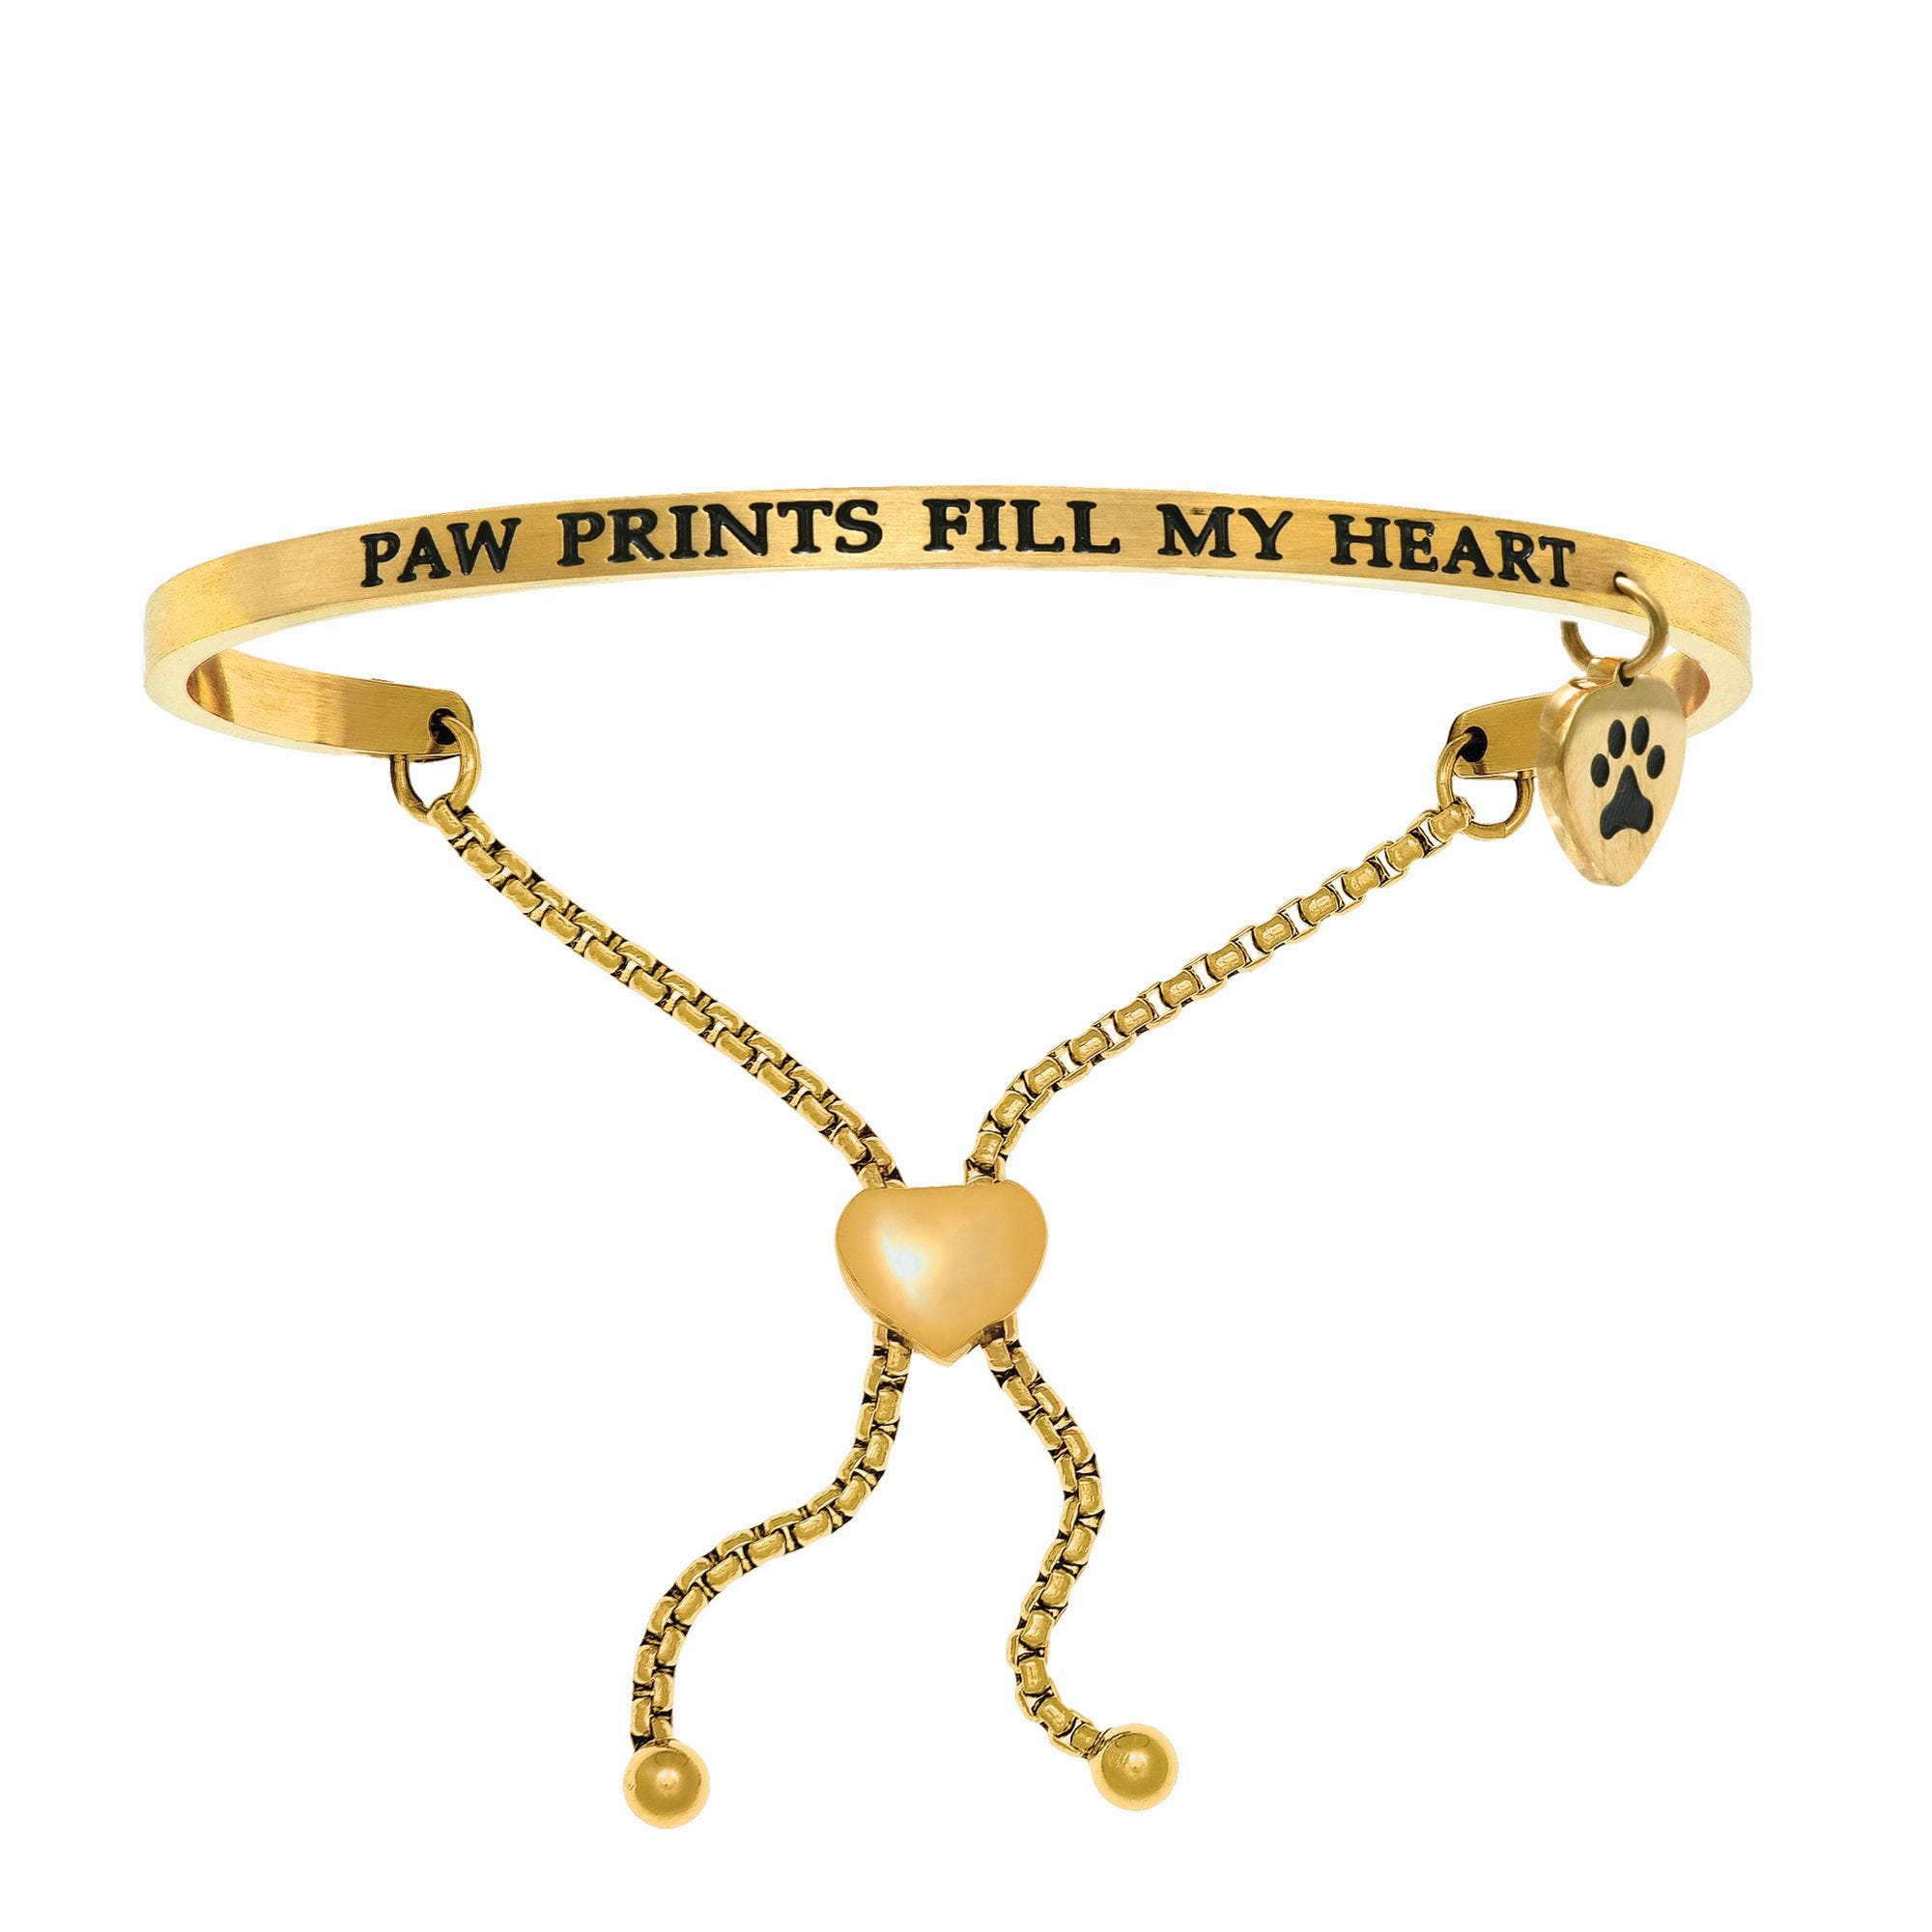 Paw Prints Fill My Heart. Intuitions Bolo Bracelet in Yellow Stainless Steel